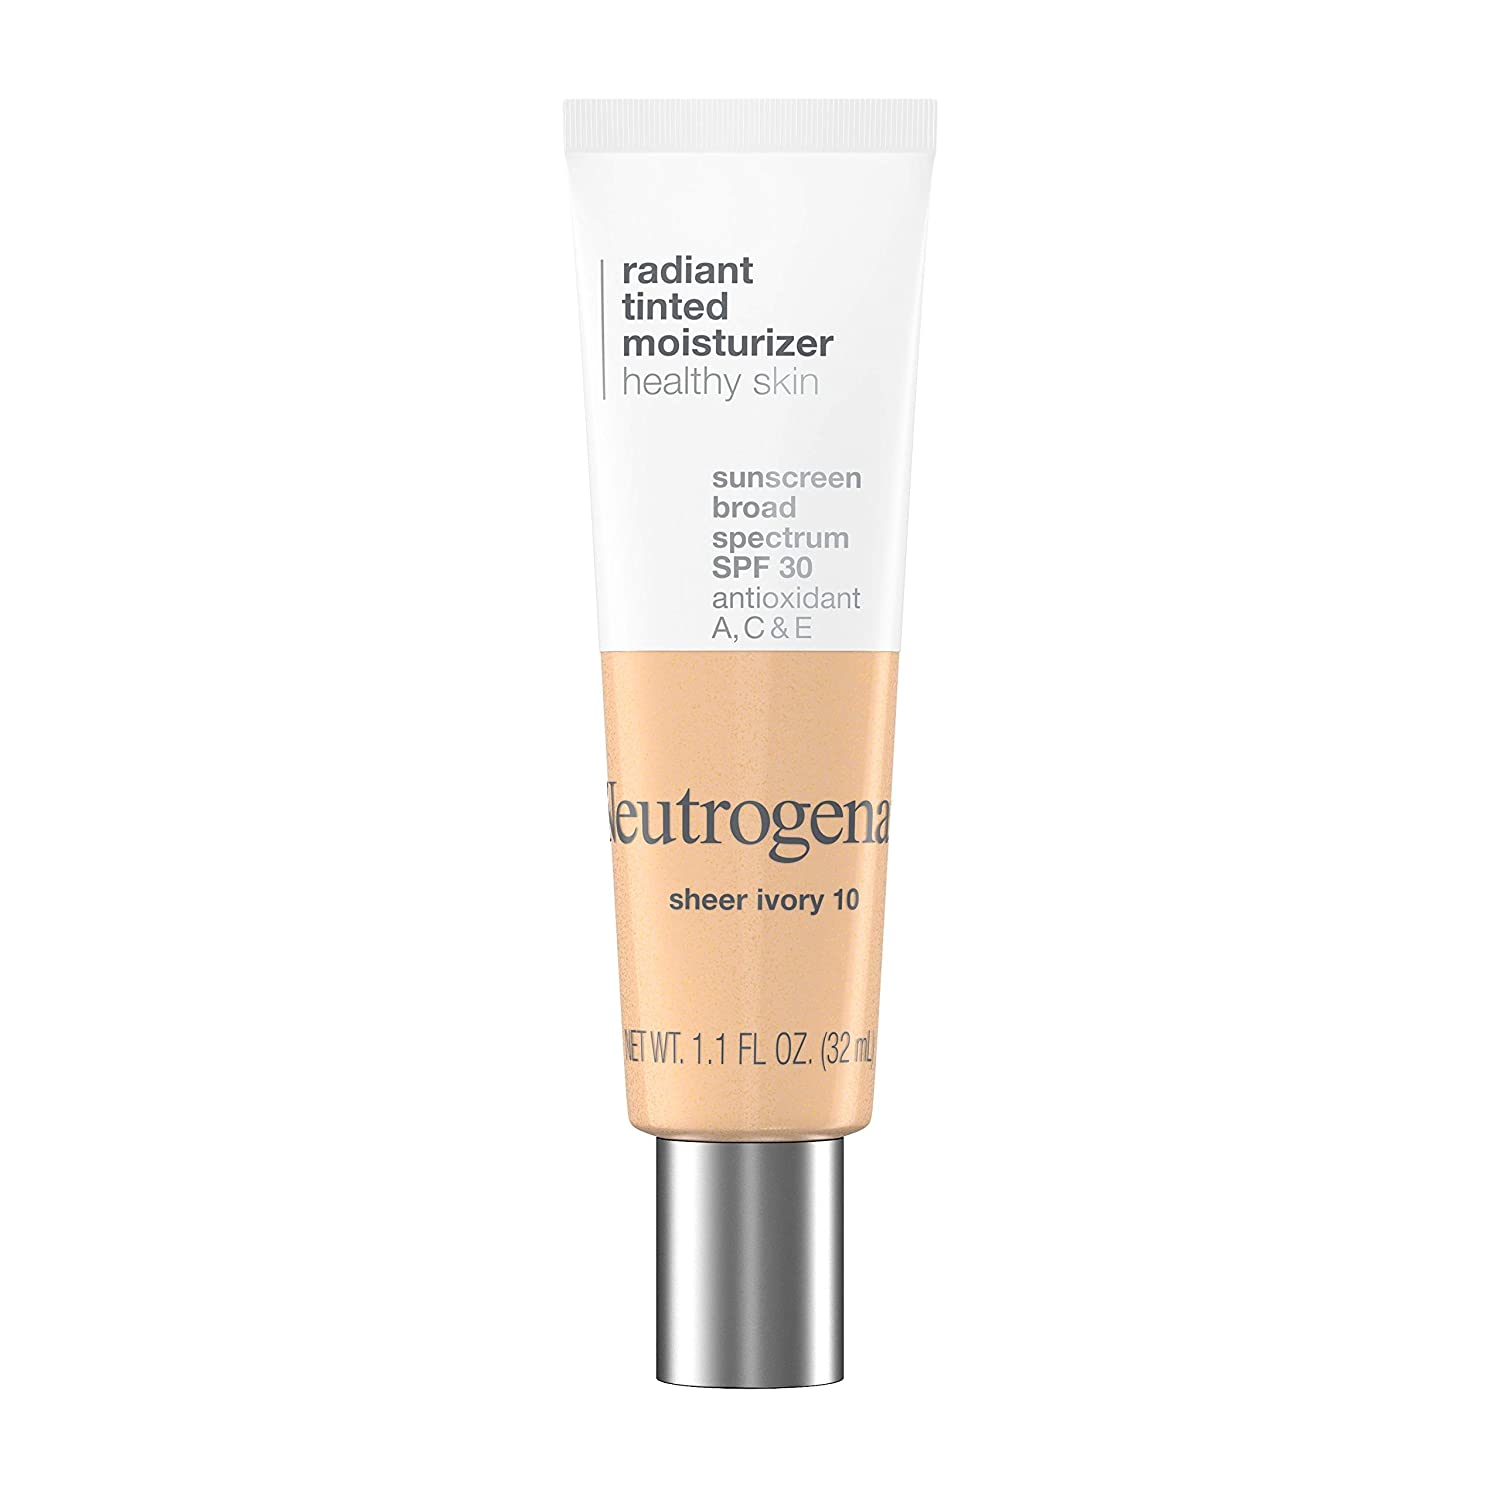 Neutrogena Healthy Skin Radiant Tinted Facial Moisturizer with Broad Spectrum SPF 30 Sunscreen Vitamins A, C, & E, Lightweight, Sheer, & Oil-Free Coverage, Sheer Ivory 10, 1.1 fl. oz